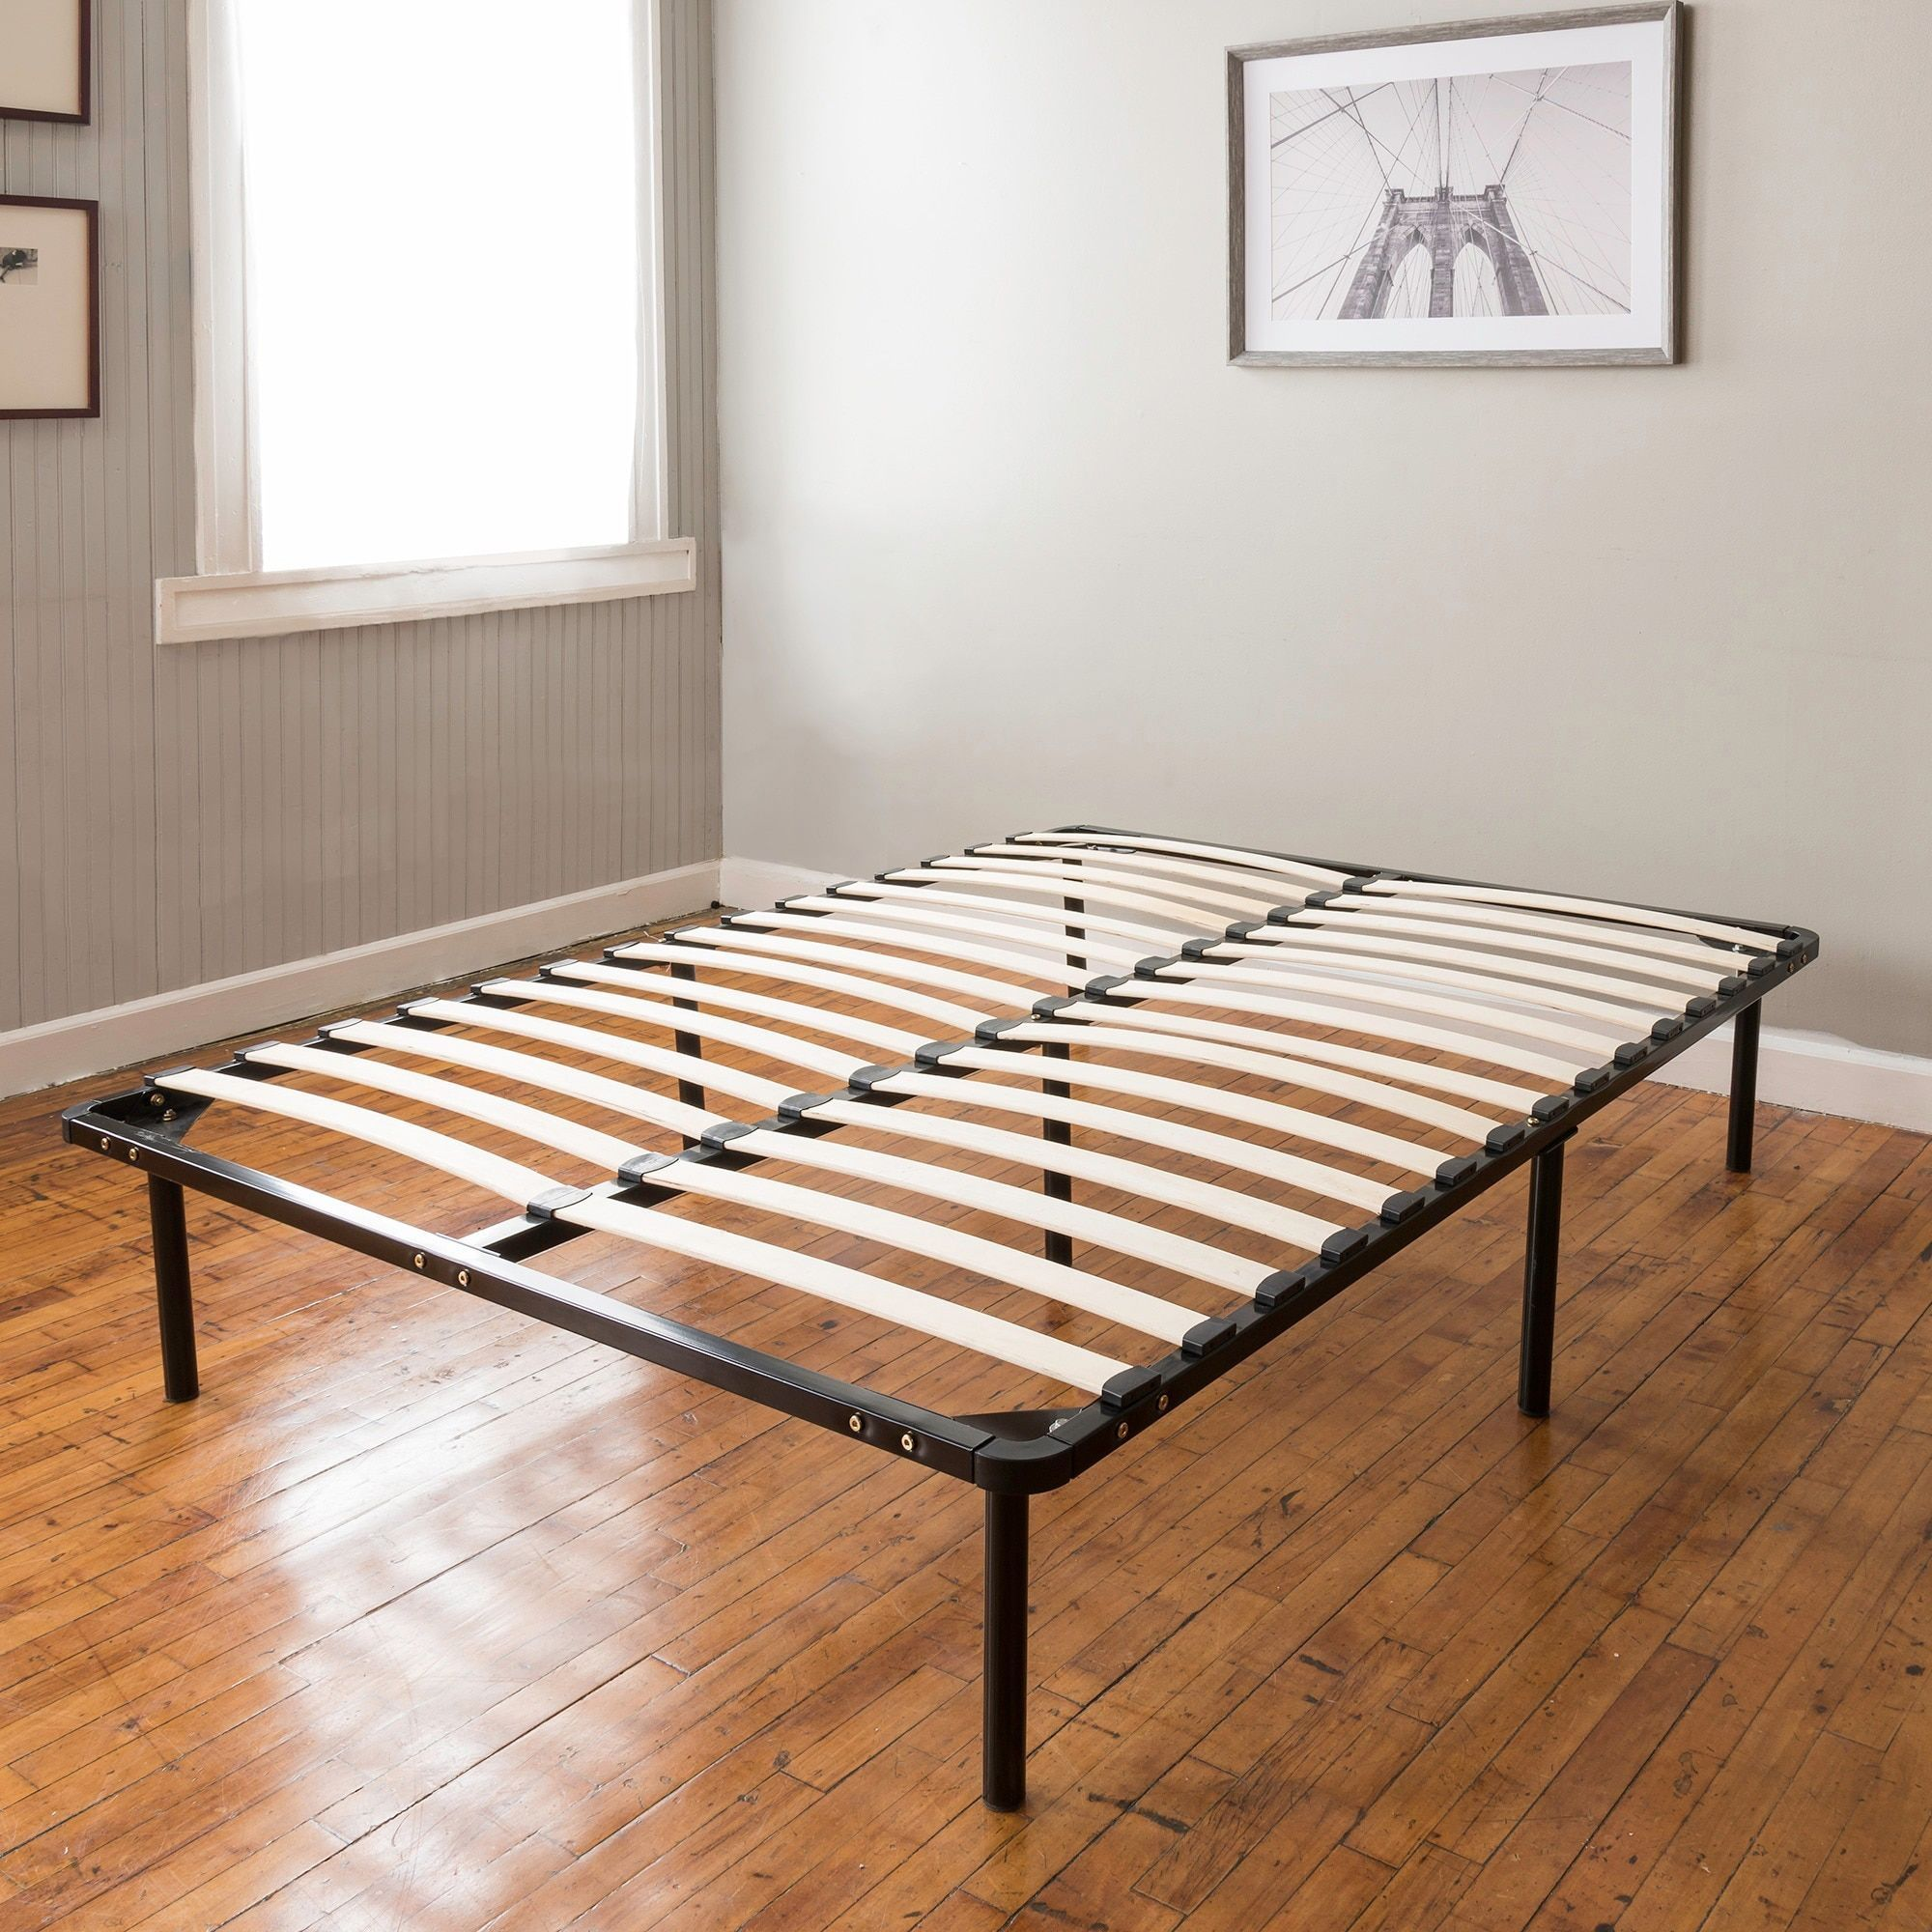 Postureloft wood slat and metal platform fullsize bed frame and